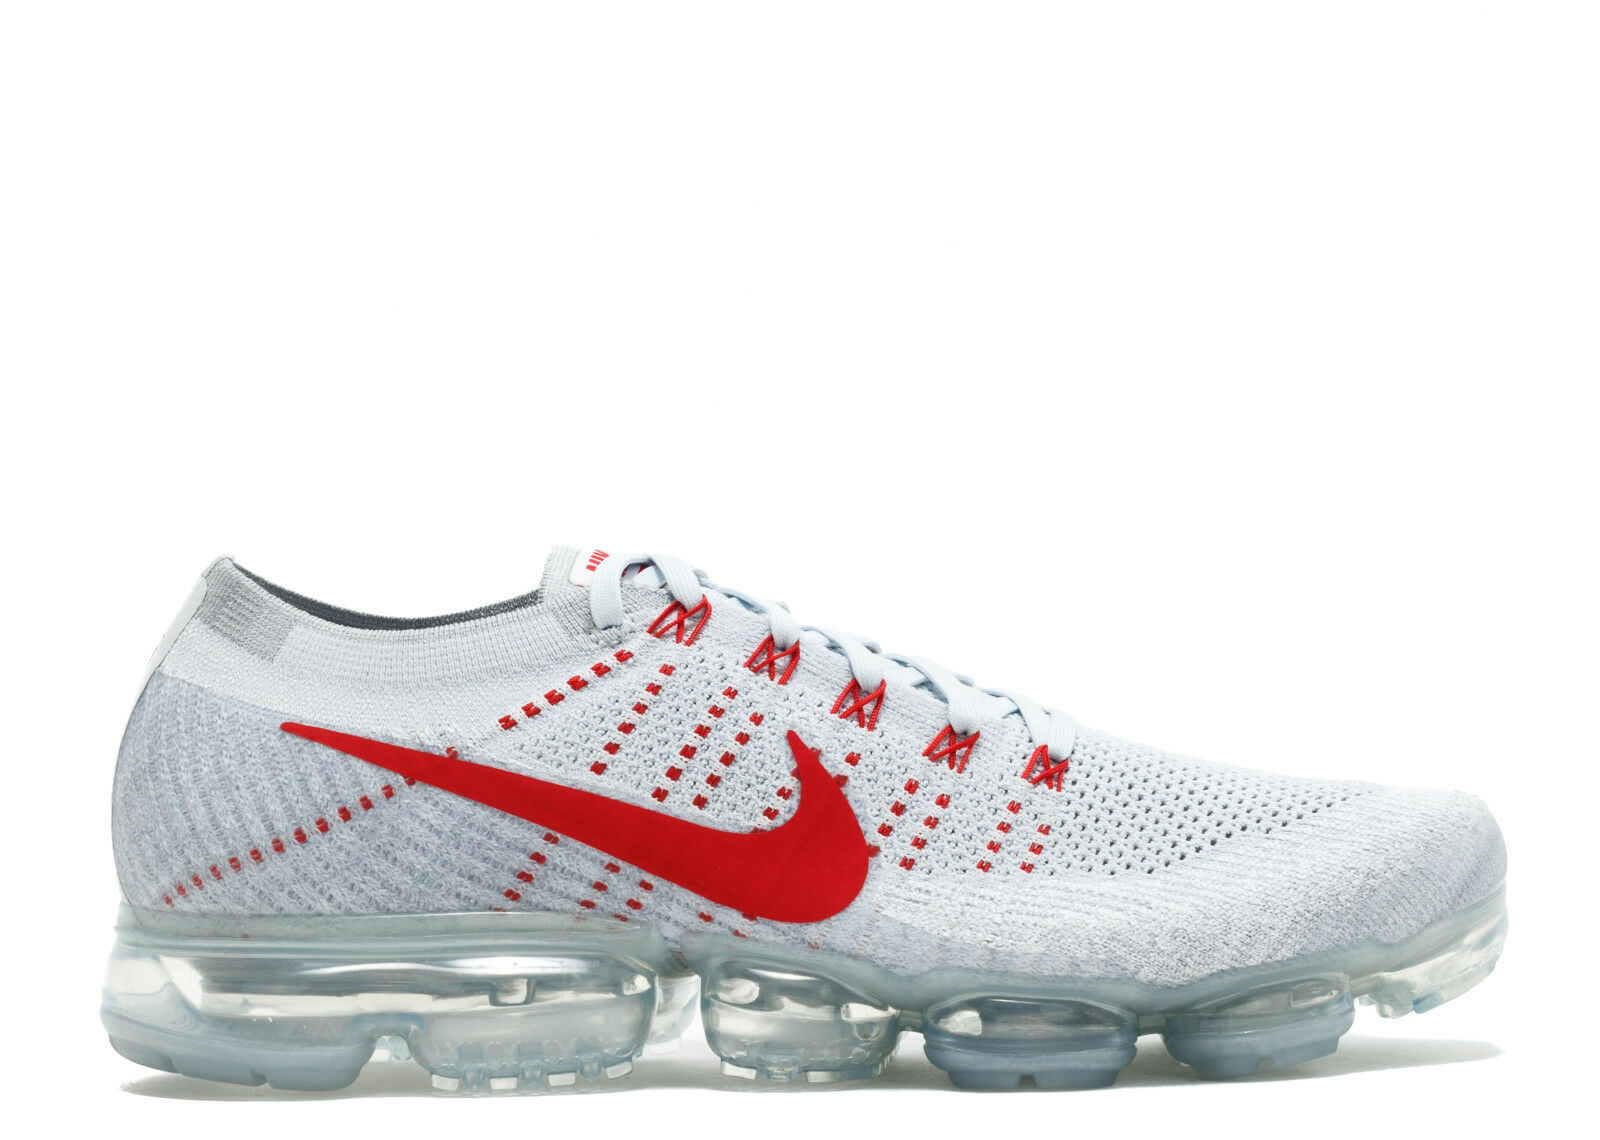 Nike Air VaporMax Red Flyknit OG University Red VaporMax Platinum Size 12.5. 849558-006 max 1 5c8e2a